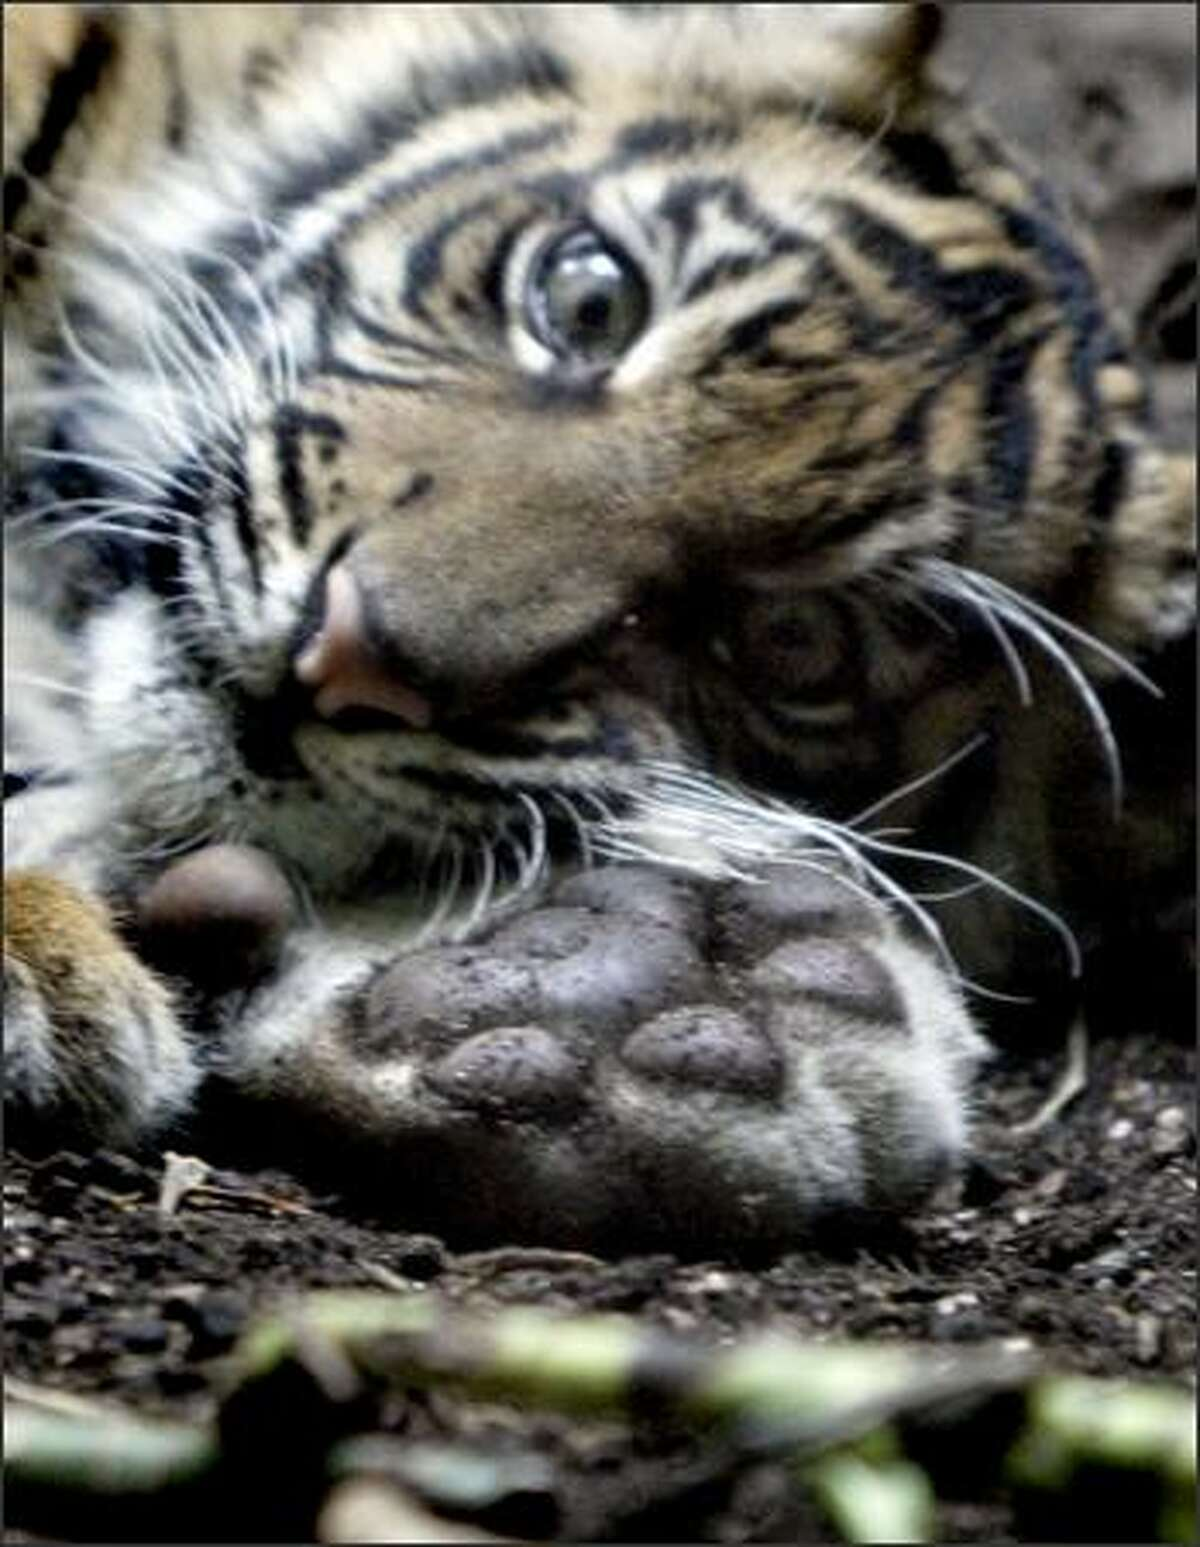 """Hadia's dirty paw is displayed as she takes a short rest. The female Sumatran tiger cub was put on display for the first time Monday at the Woodland Park Zoo. The cub's name, which means """"gift"""" in Sumatran, was announced prior to the cub being shown."""